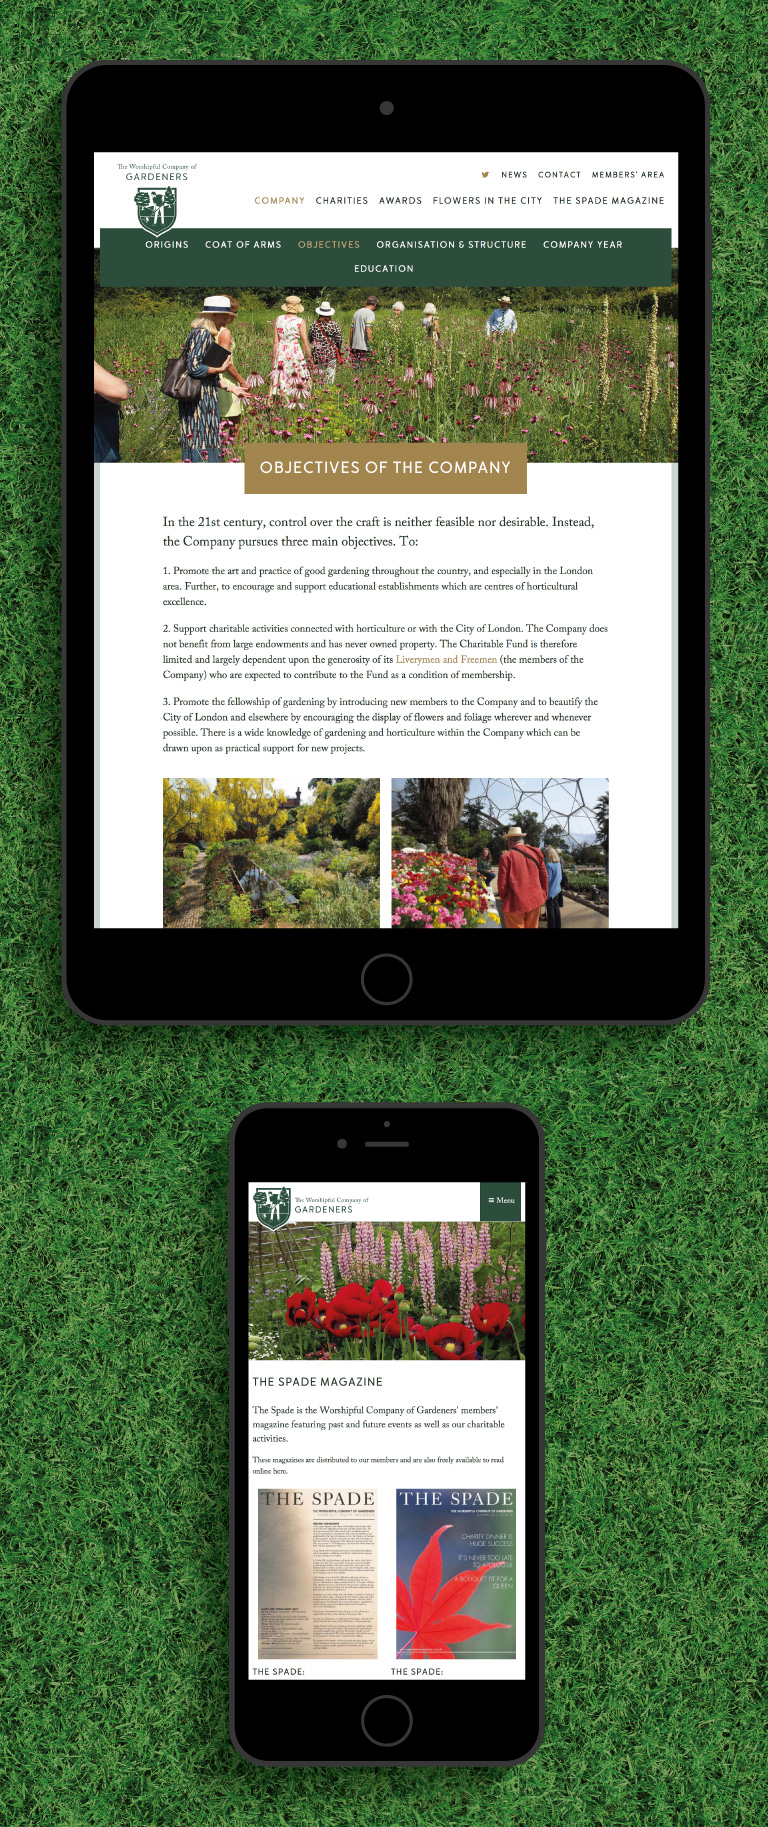 The Worshipful Company of Gardeners website on an iPad and iPhone - mobile